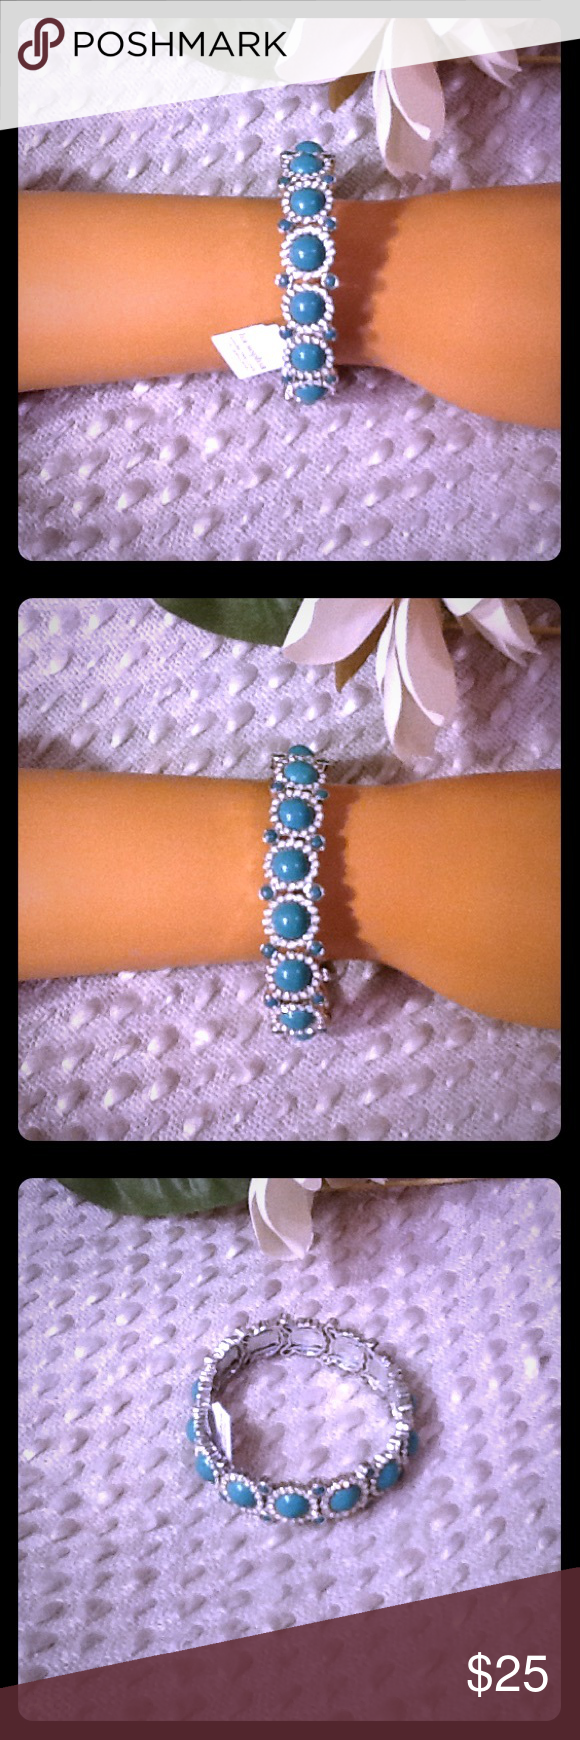 Lia Sophia Stretch Bracelet NWT Blue Silver Beautiful Lia Sophia stretch bracelet, NWT, beautiful blue colored stones surrounded by white crystal rhinestones, should fit most wrist sizes. Bundle to save 15% off your purchase of 2 or more items from my closet! Lia Sophia Jewelry Bracelets